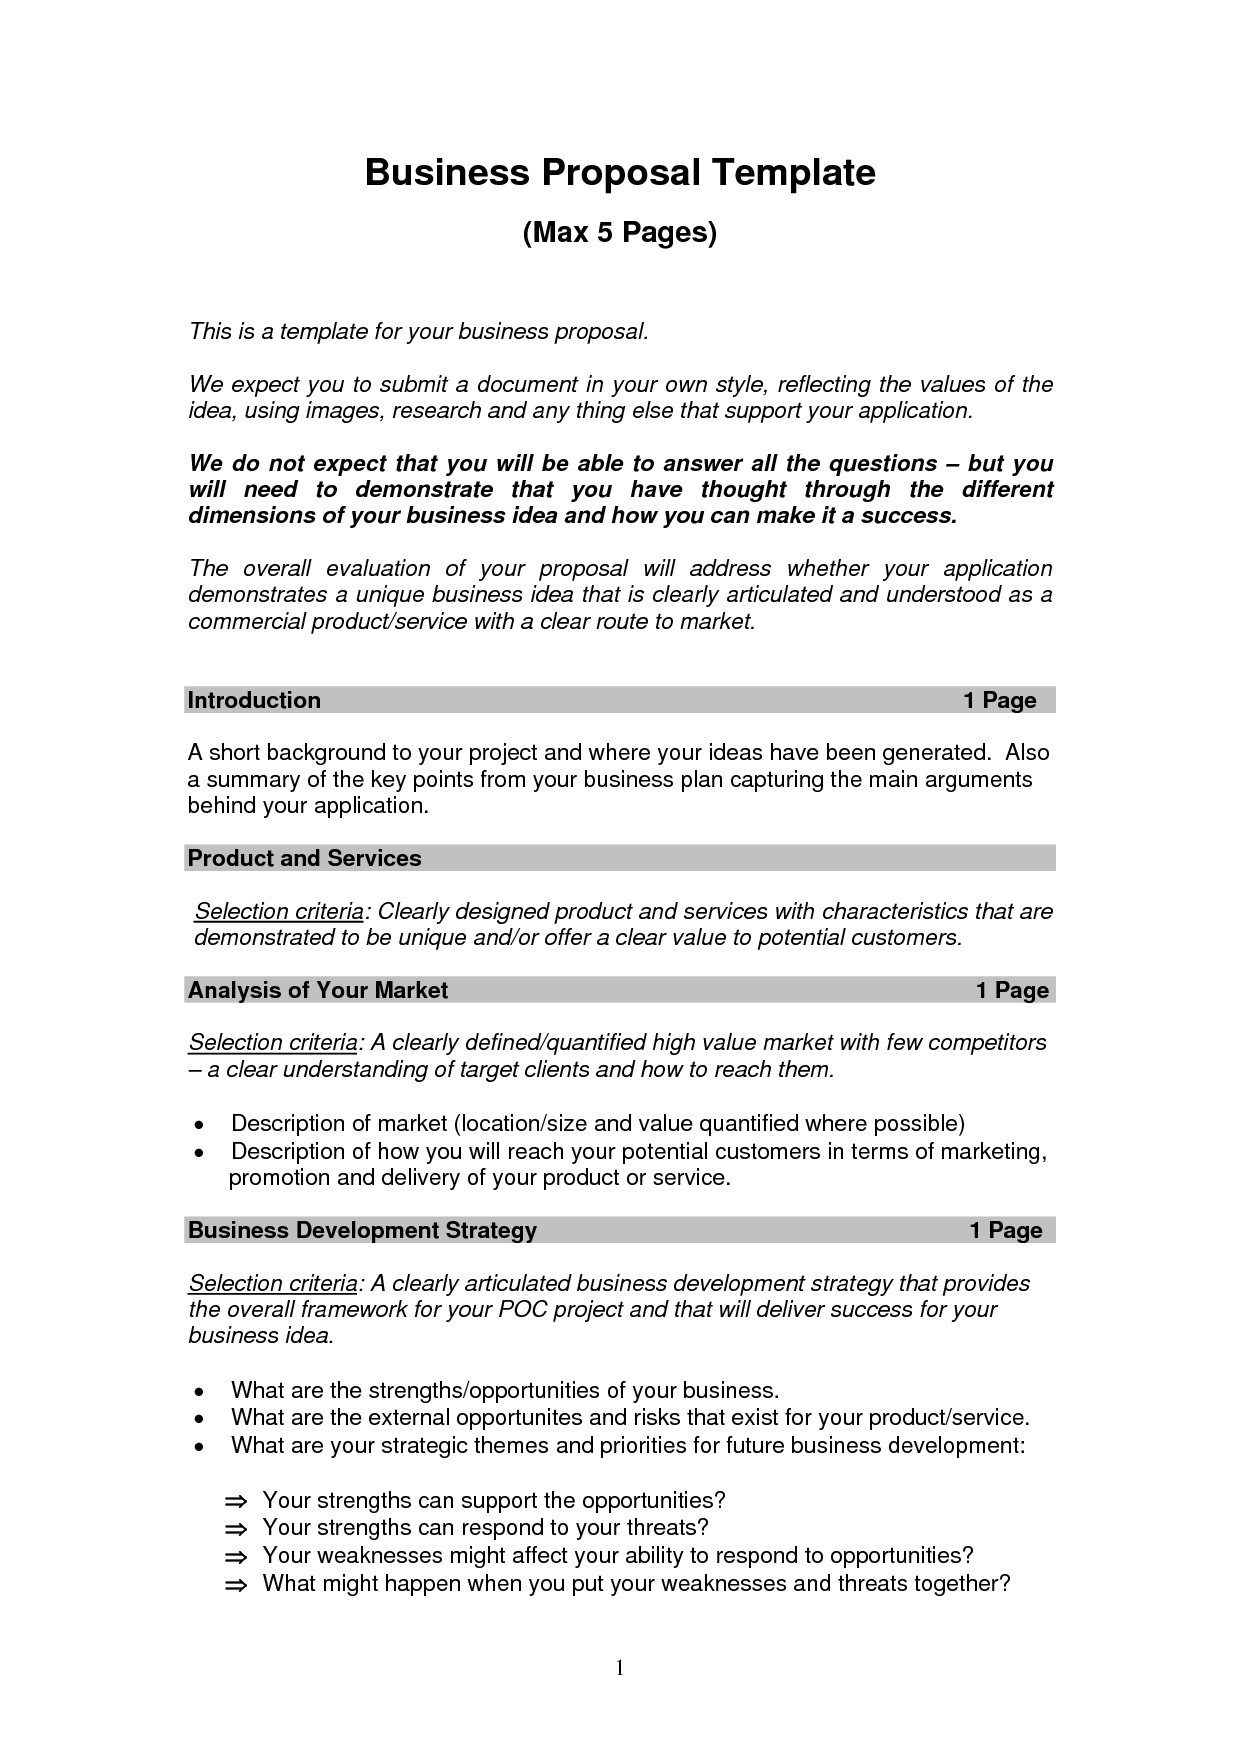 014 Argumentative Essay Transitions Elegant How To Write Plan For An Valid Sample Of Stupendous Transition Phrases Full